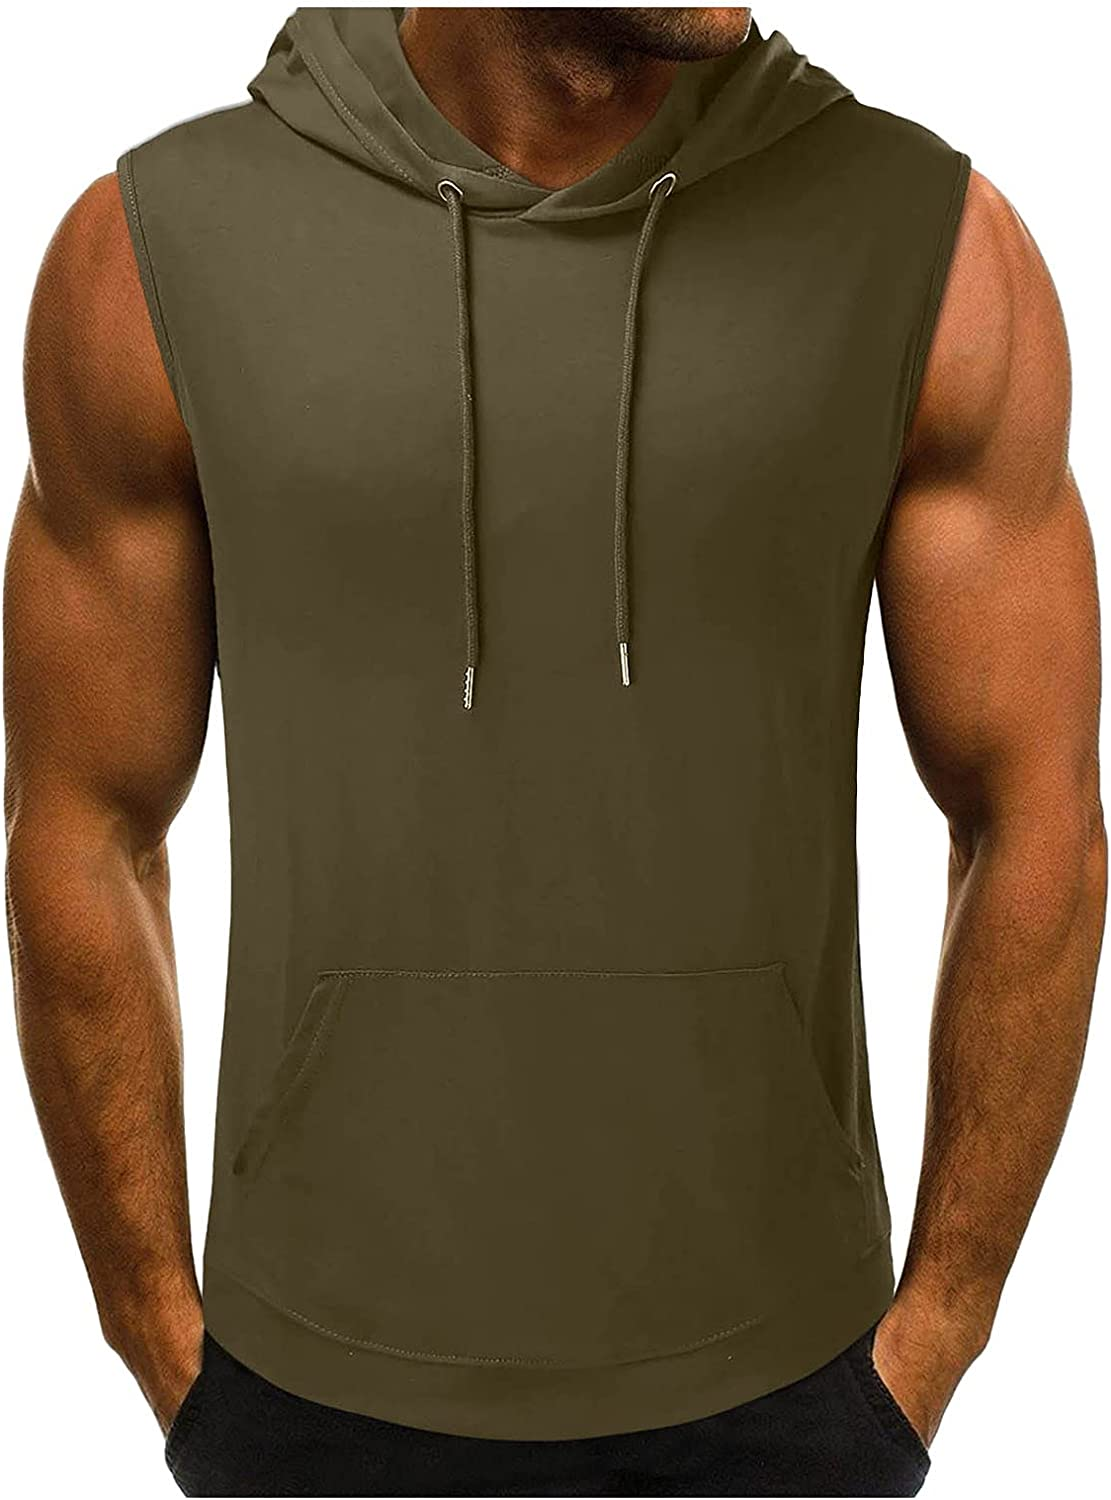 Beshion Men's Workout Hooded Tank Tops Sleeveless Gym Hoodies Bodybuilding Muscle Shirts Hip Hop Sports Shirts with Pockets